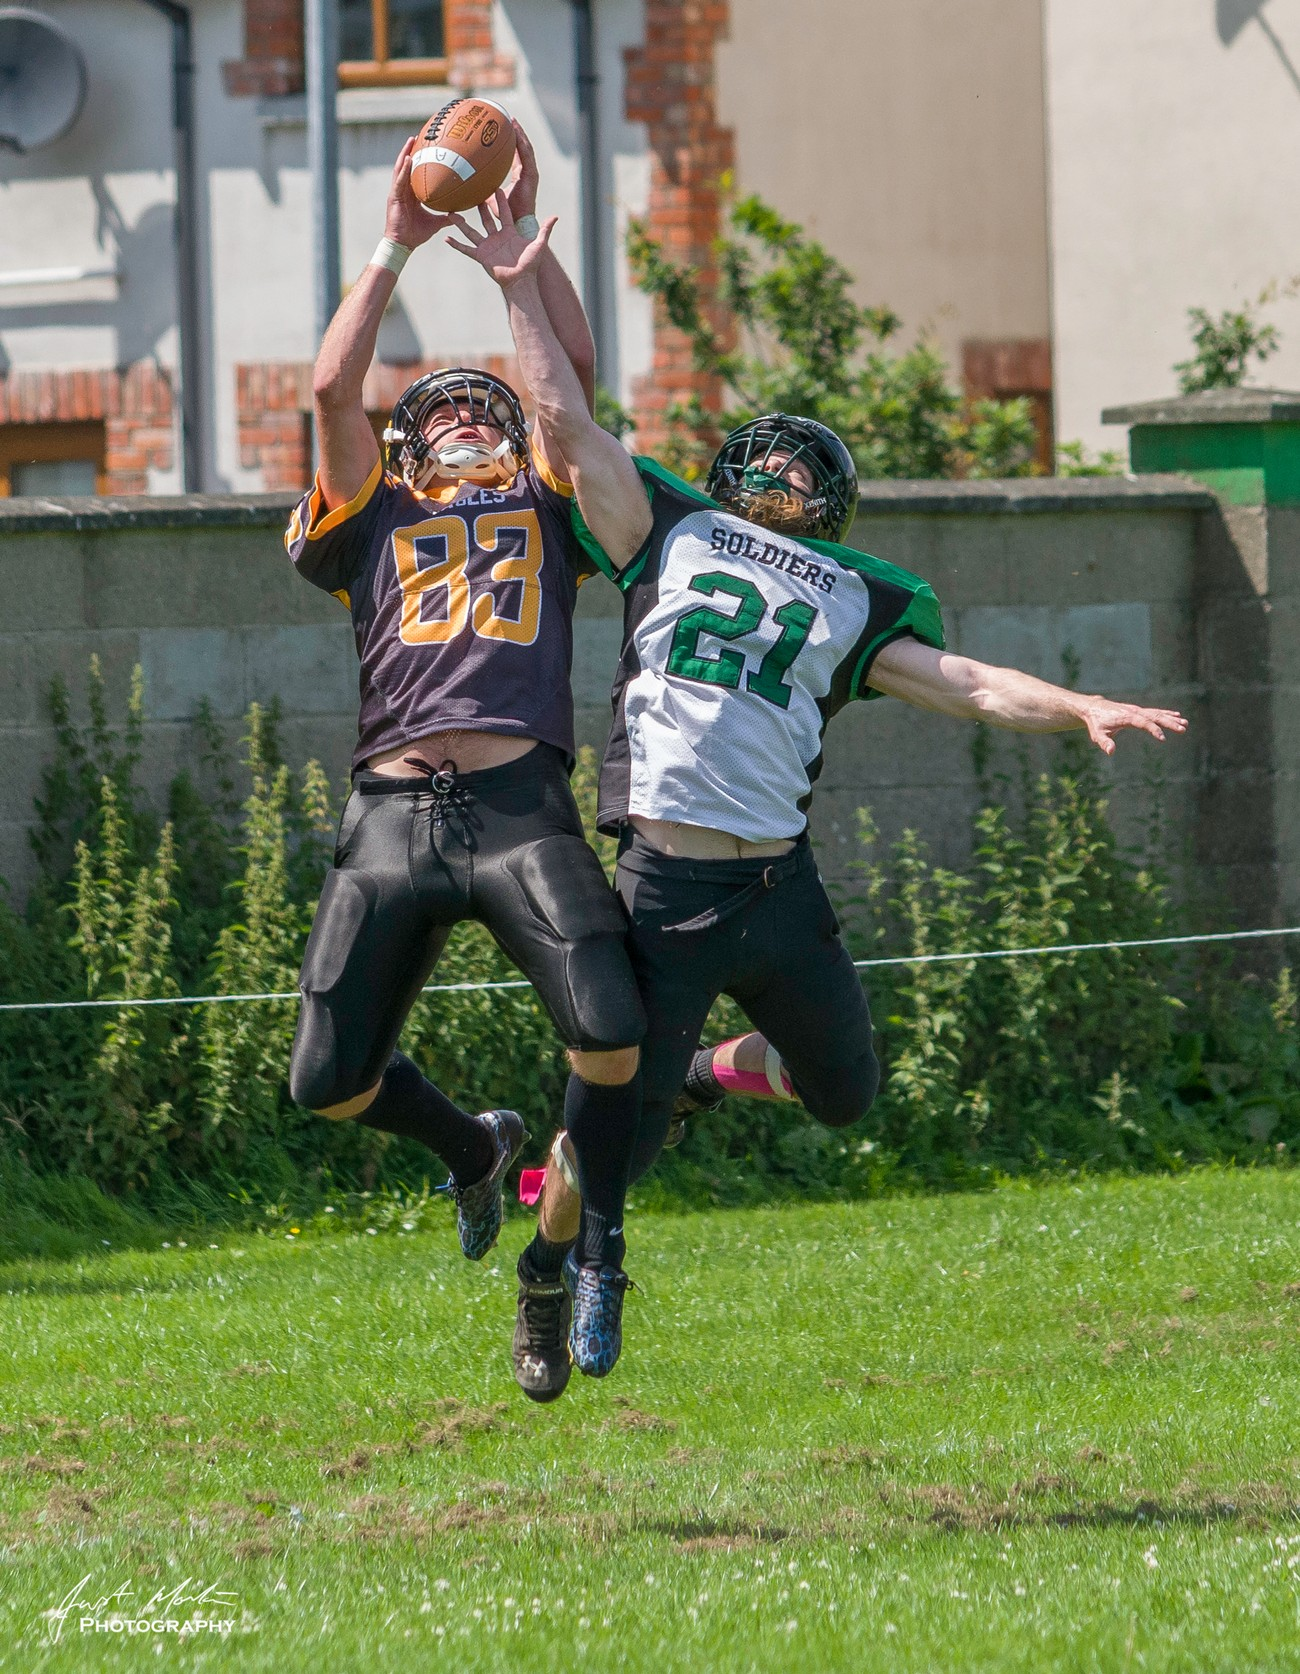 Local American Football team in action